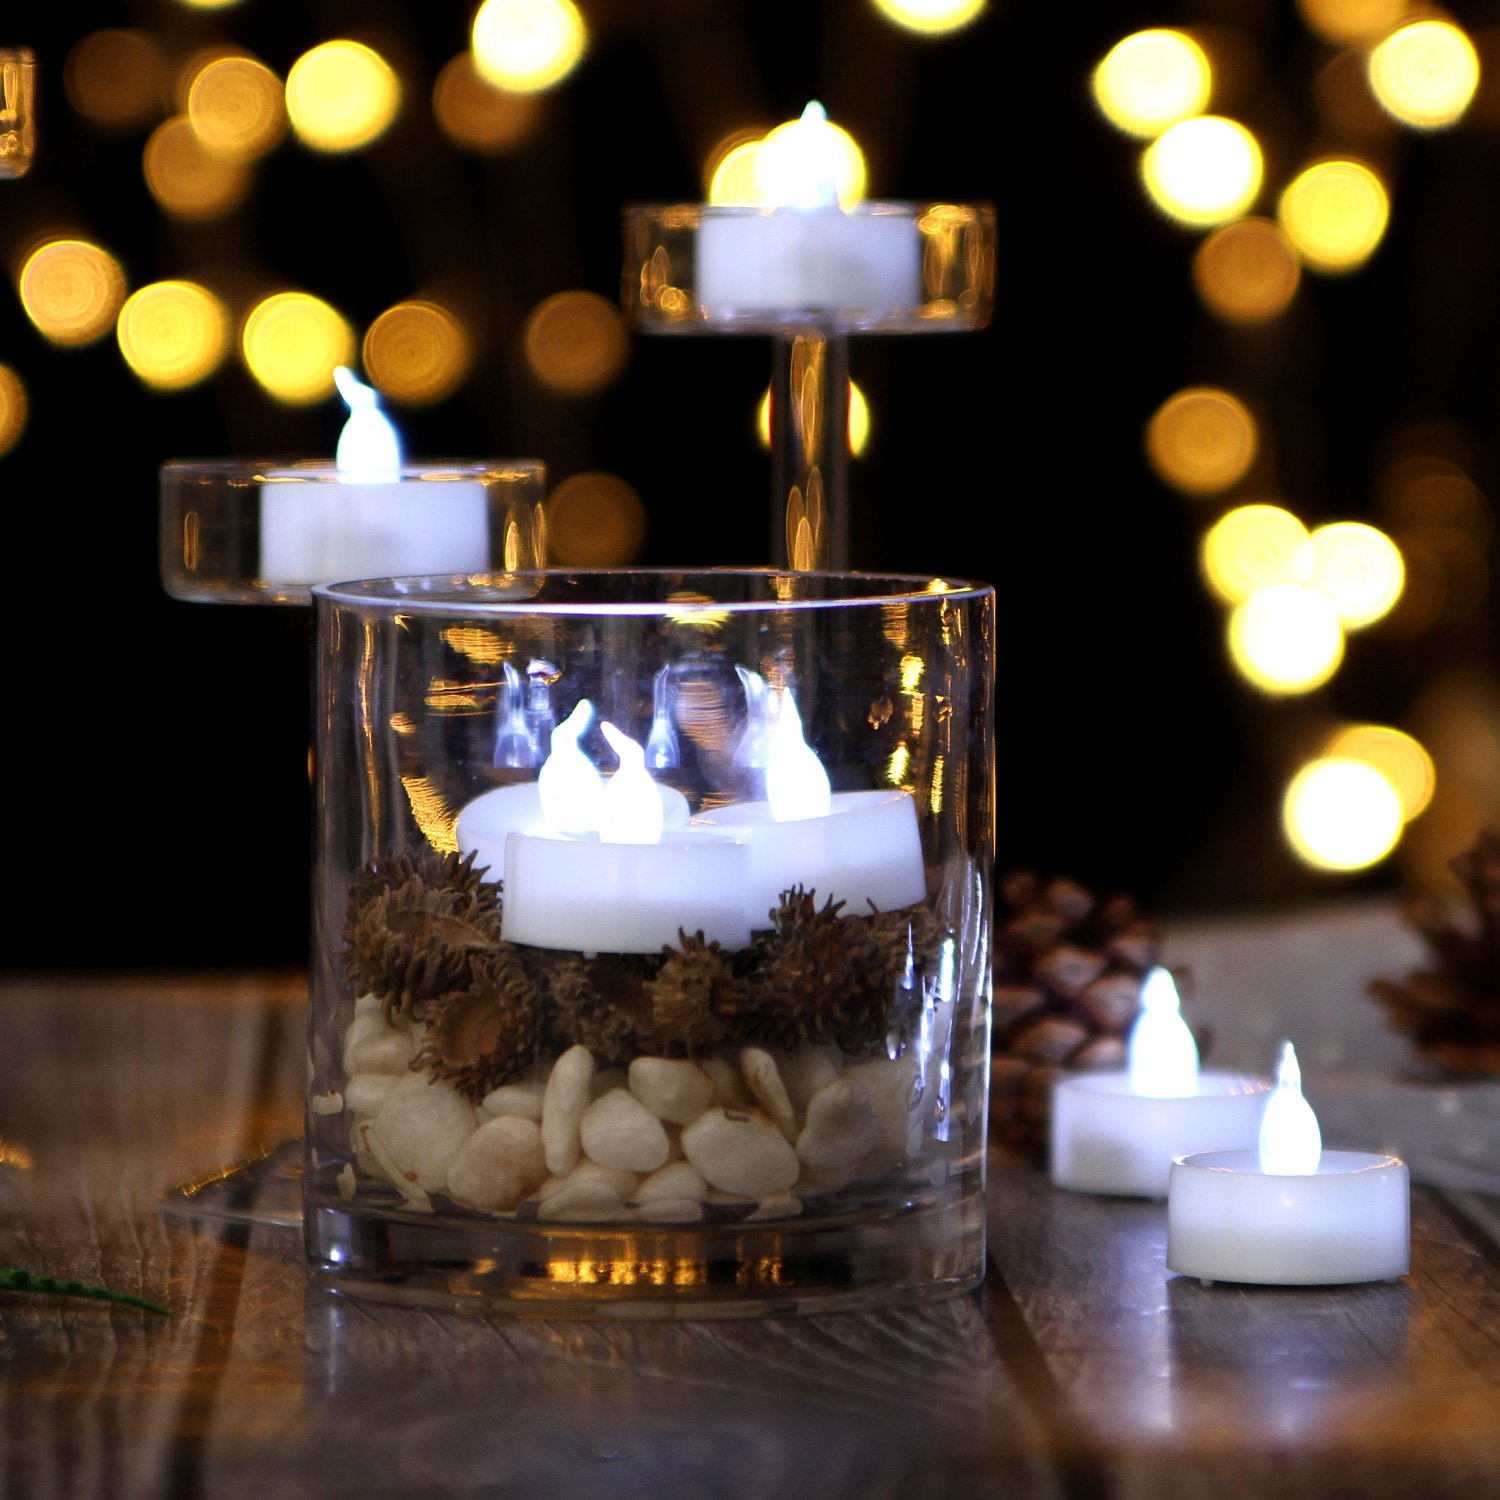 Auto 6 Hour on and 18 Hour Off After Turing On AGPTEK/® 24pcs Cool White Flickering Flameless LED Tealight Candles with Timer Function for Wedding//Party Decorations